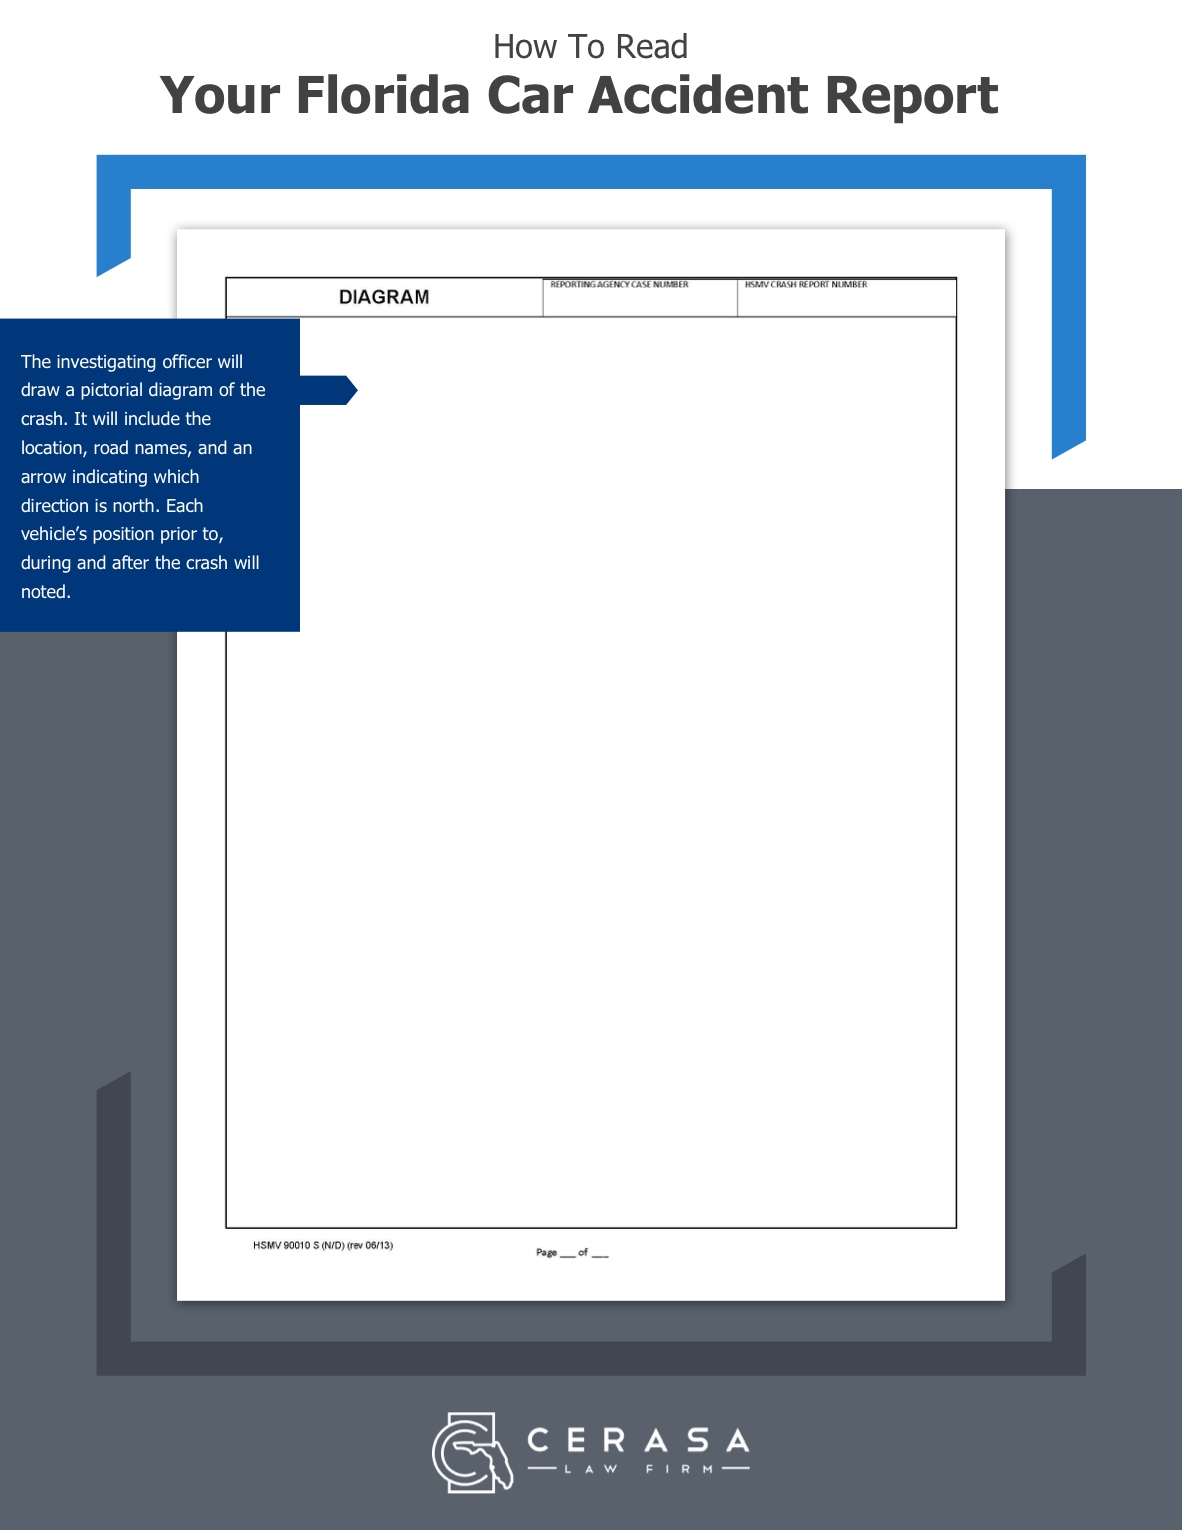 How To Read Your Accident Report page 3